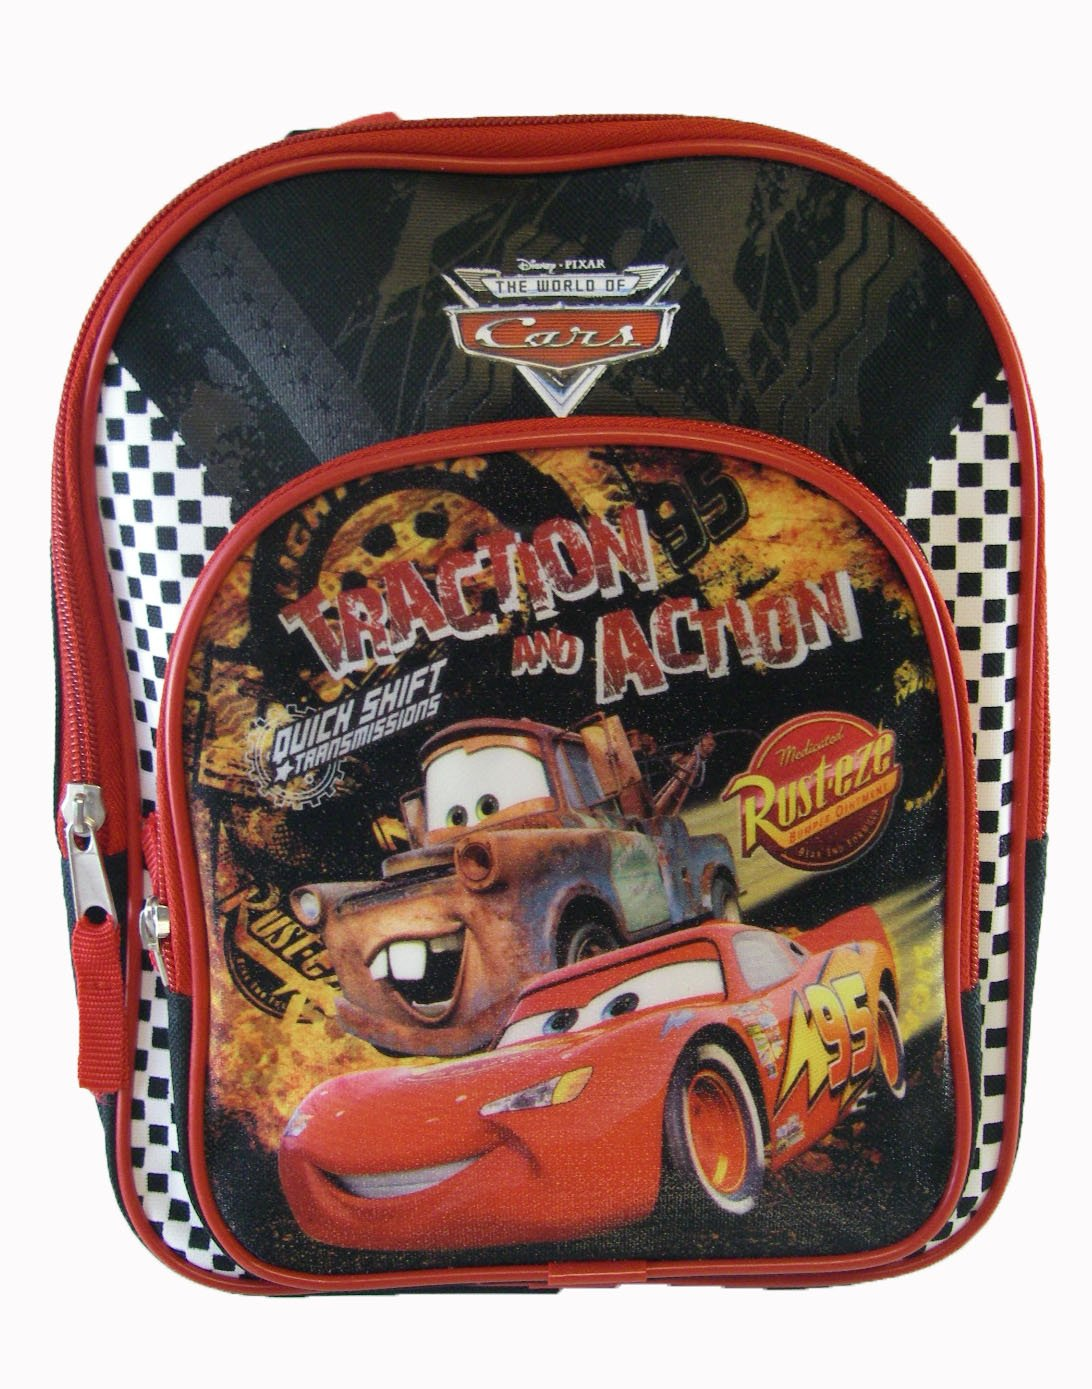 Disney Pixar Cars toddler backpack - Mator and Lightning McQueen in action  mini backpack  Amazon.co.uk  Luggage 8a97e8fdc14a8